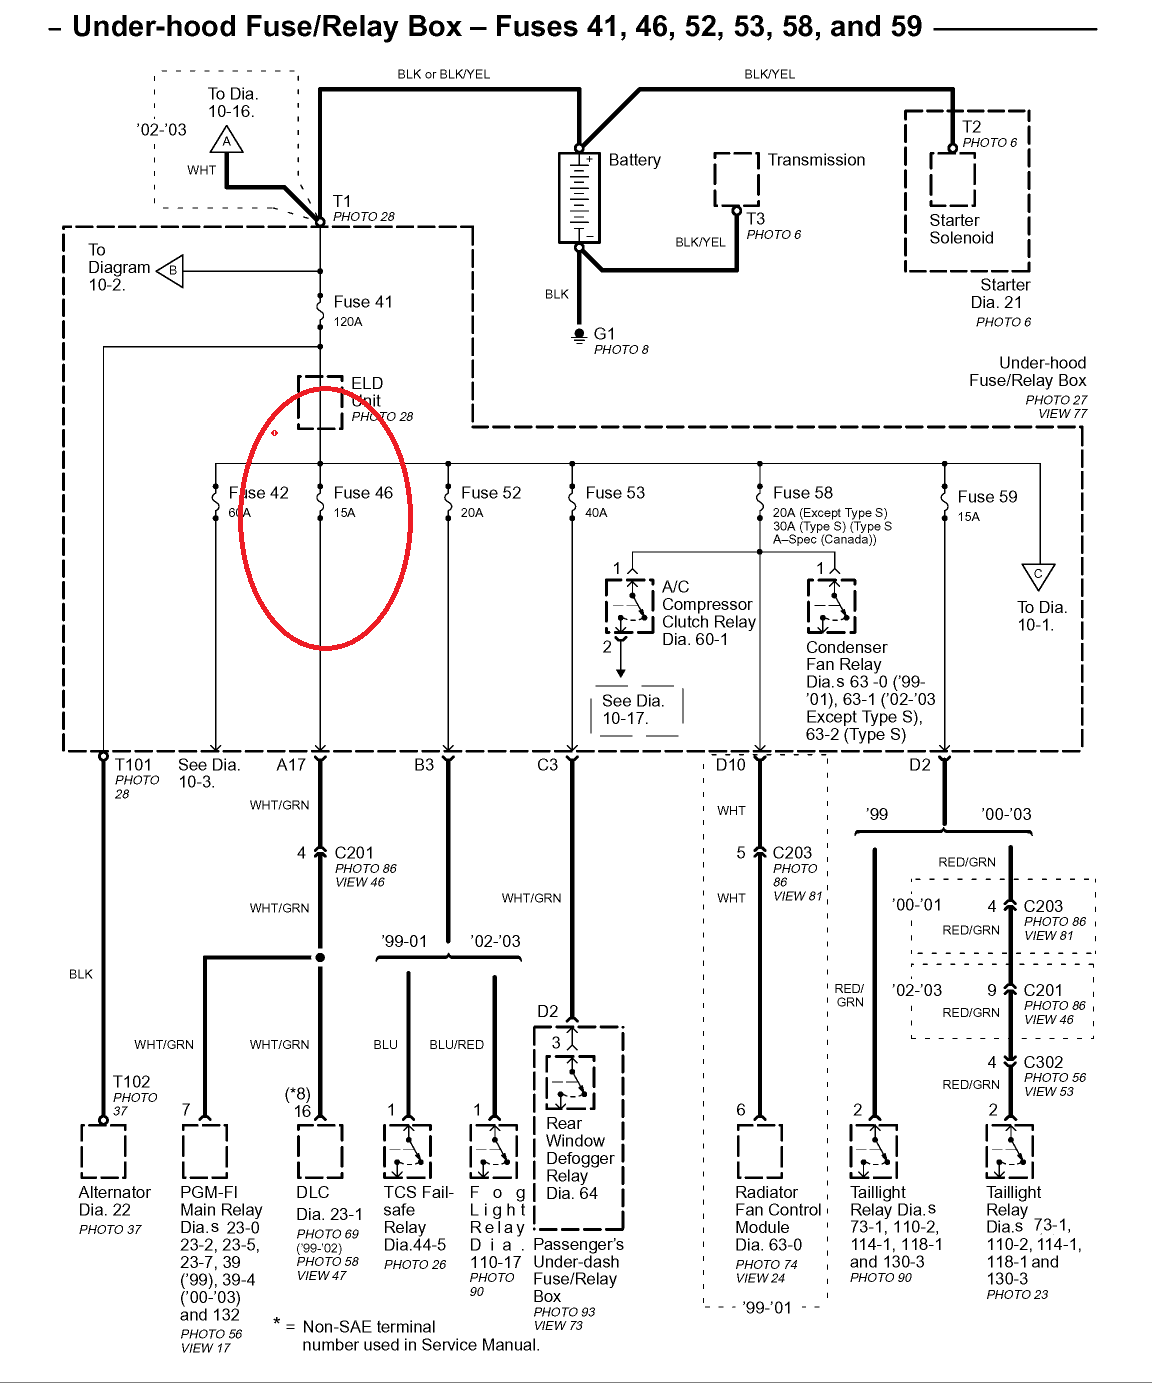 2013 03 03_140940_1 i was driving my 02 acura tl when it completely stalled and left 2005 acura tl amp wiring diagram at nearapp.co